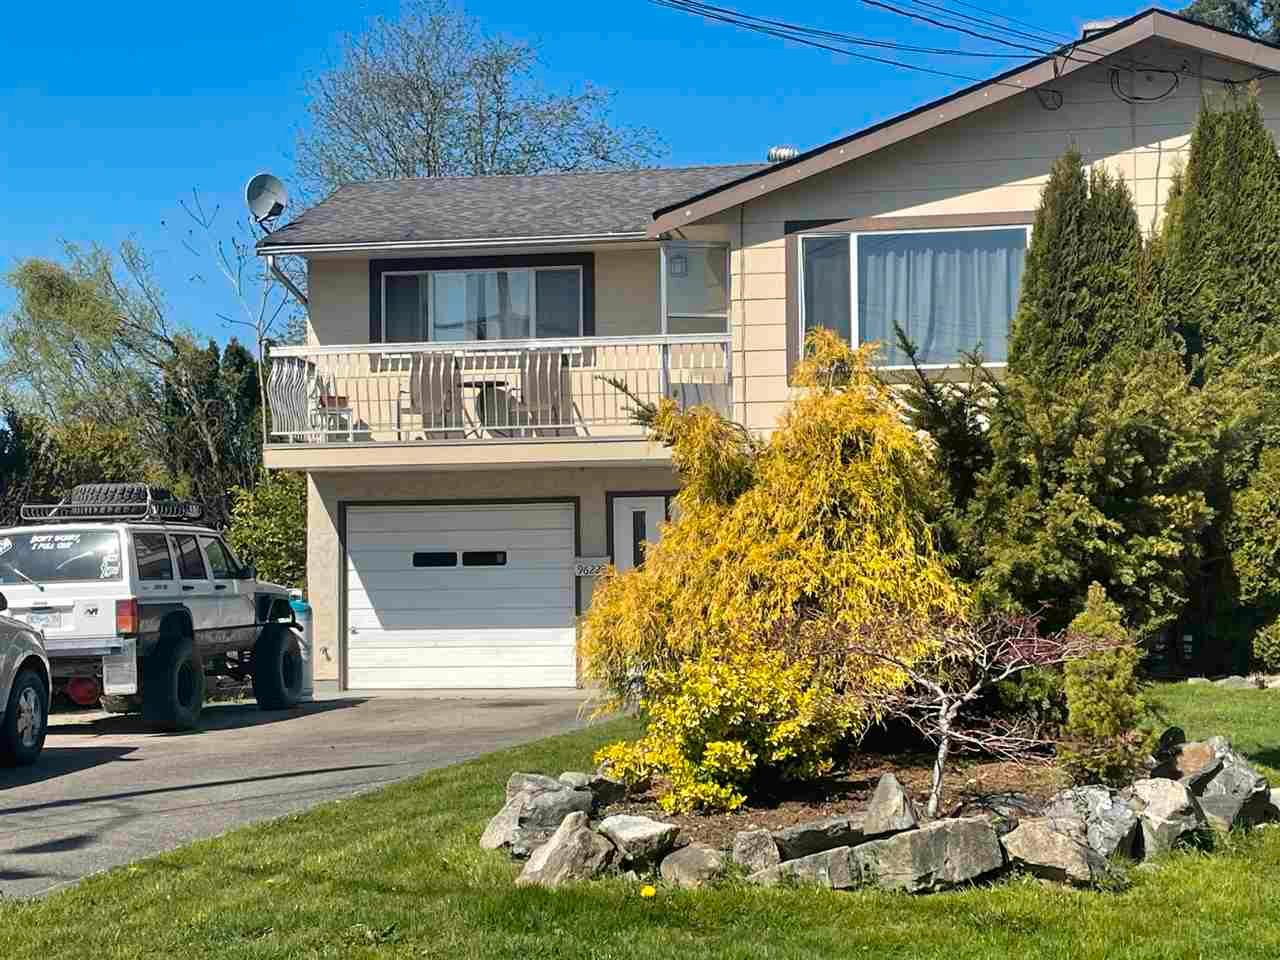 Main Photo: 2 9622 PAULA Crescent in Chilliwack: Chilliwack E Young-Yale 1/2 Duplex for sale : MLS®# R2567998